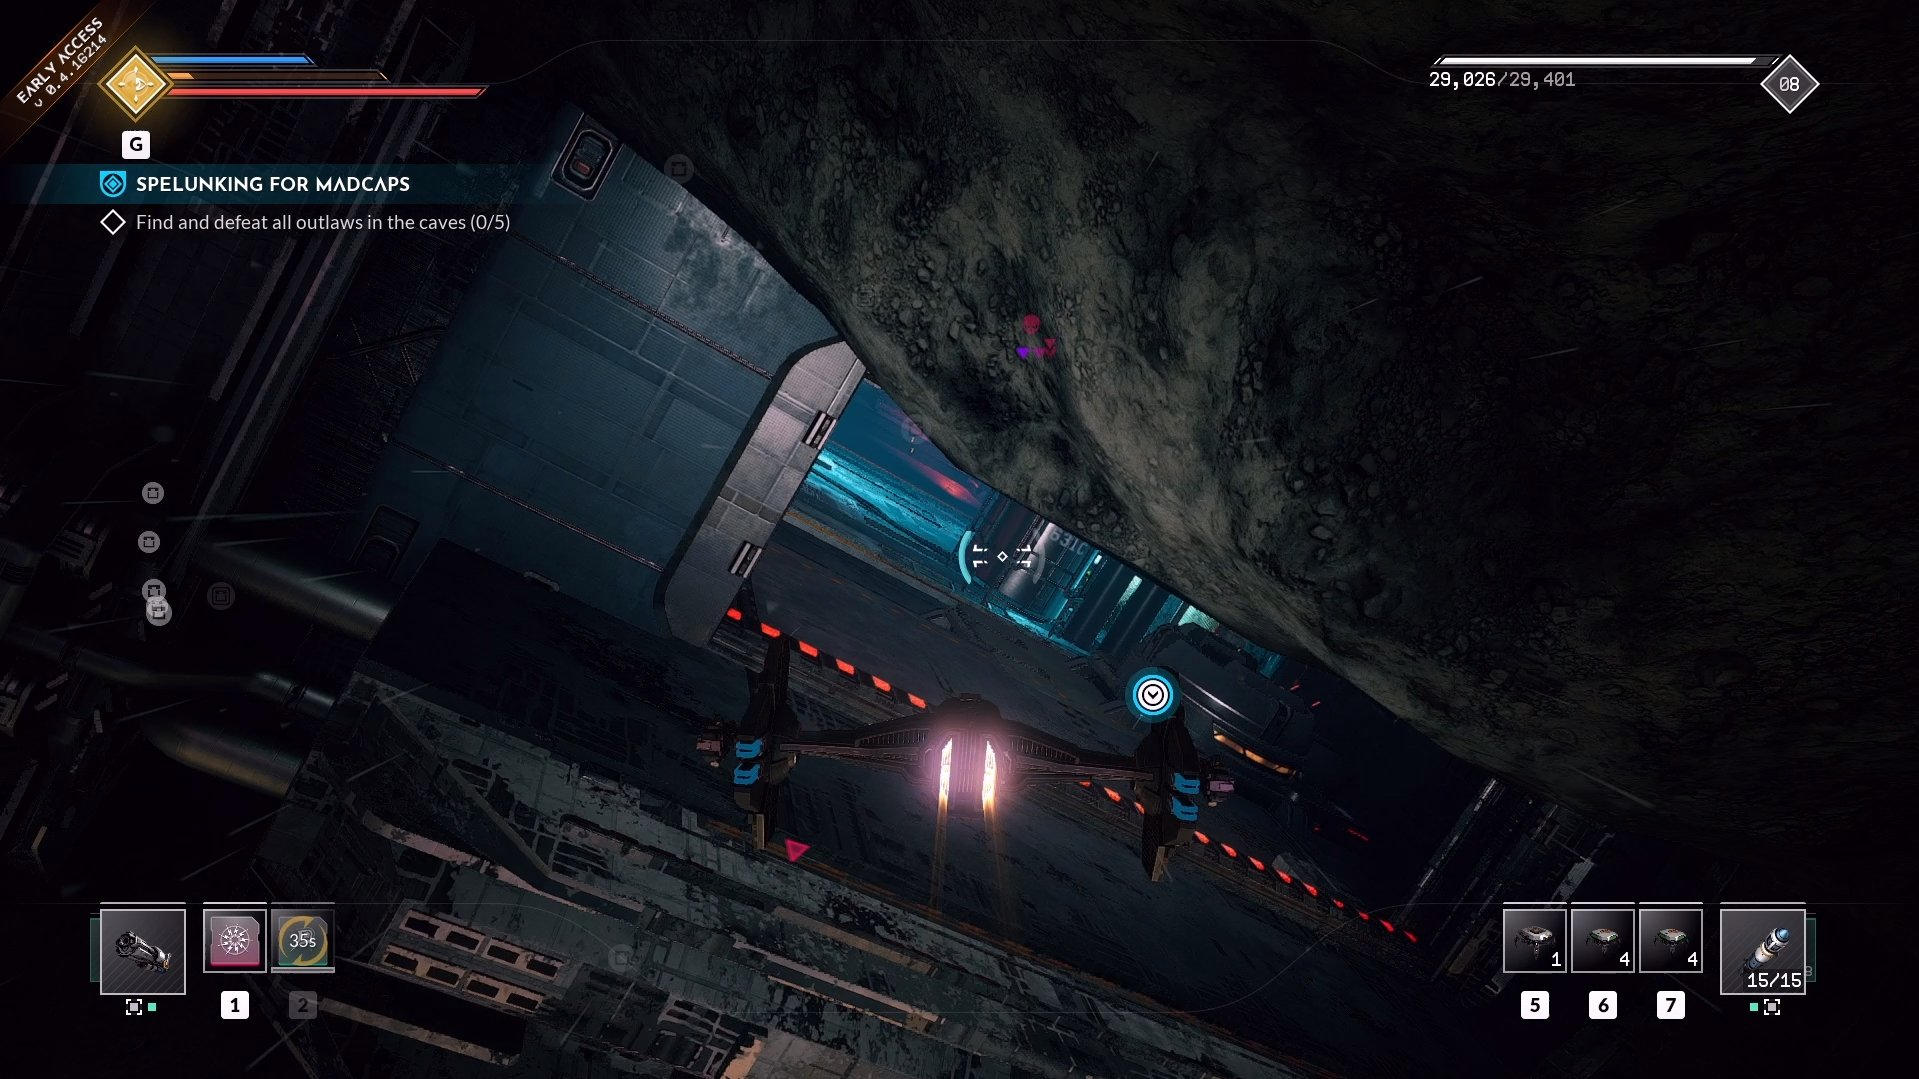 Everspace 2 - Spelunking For Madcaps Walkthrough 2